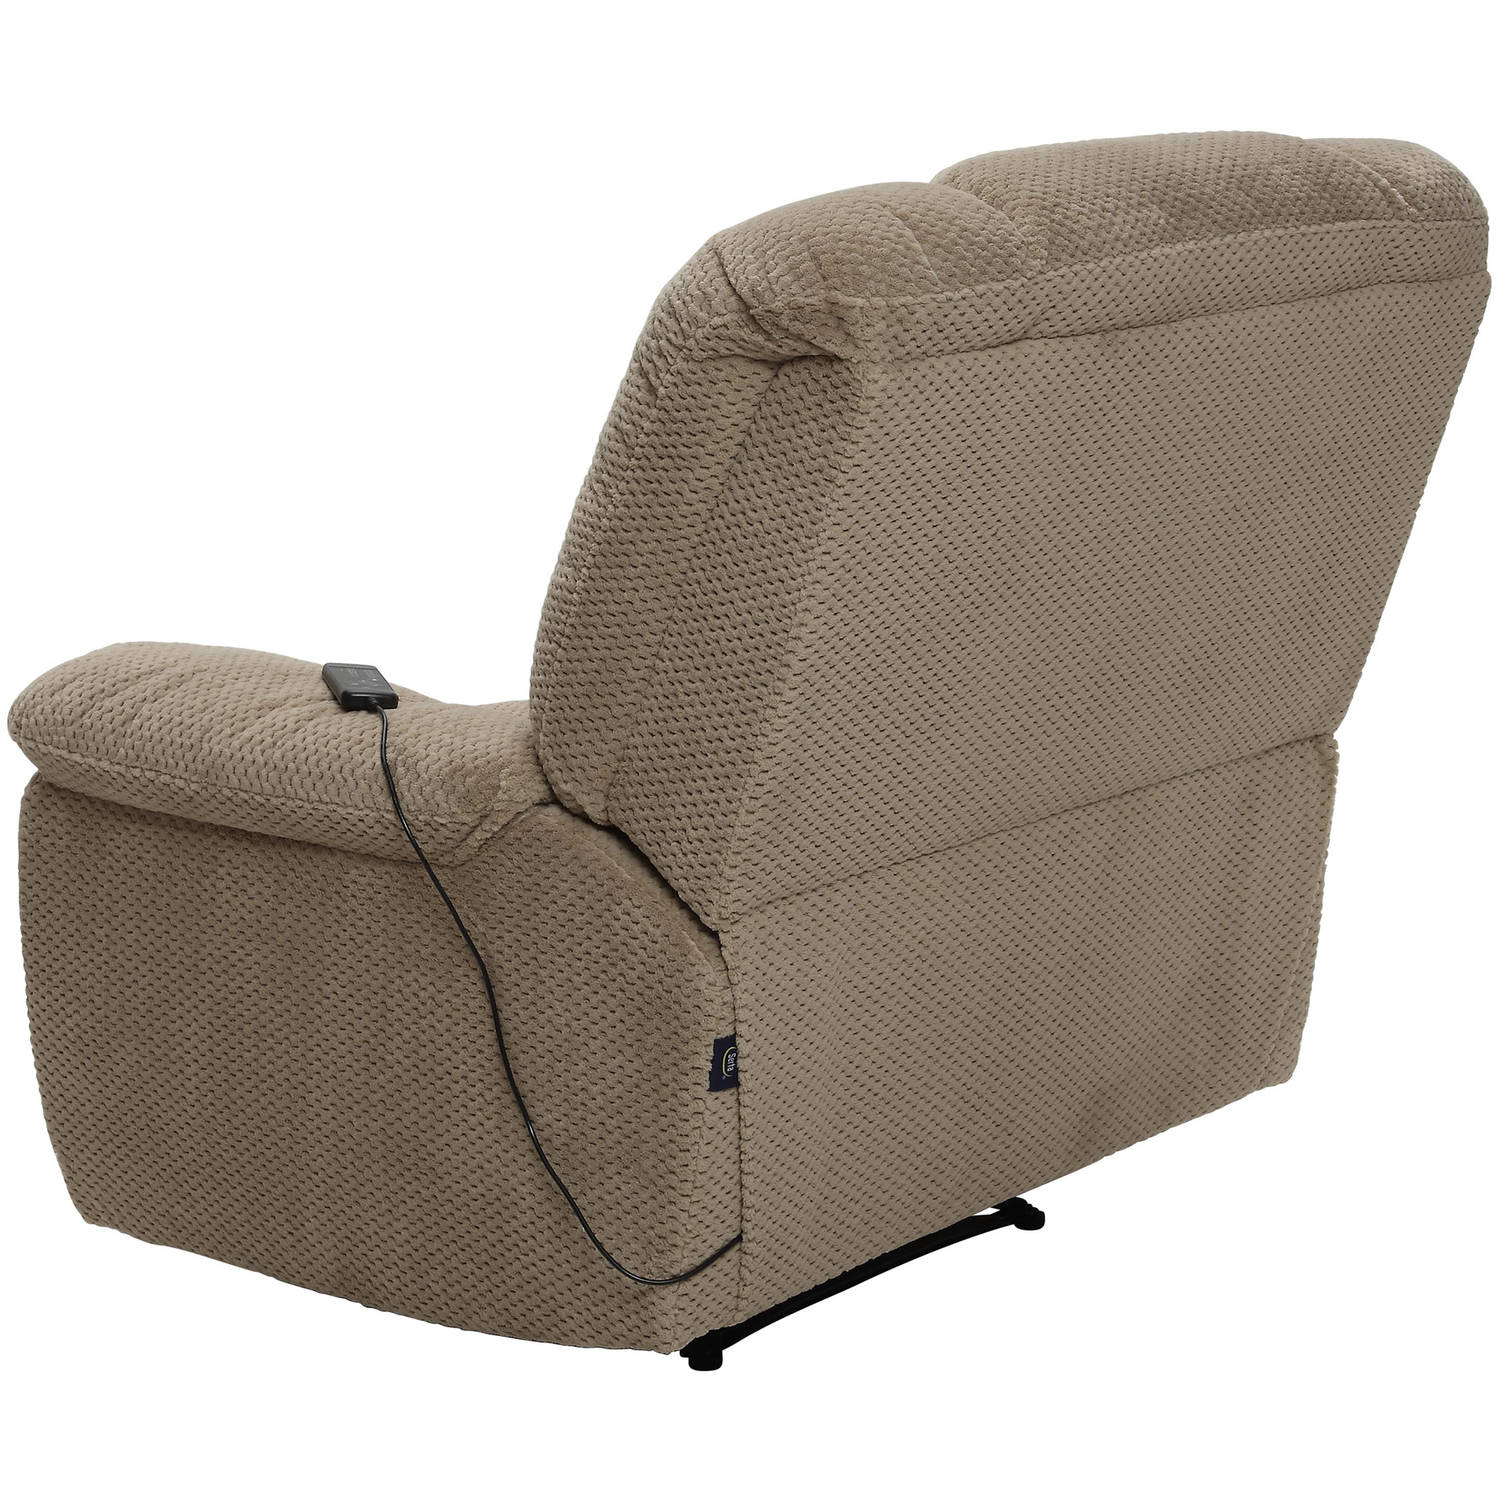 with pemberly seat rotmans serta recliner hughes furniture back chair tufted upholstery number leg at safari item abington high by traditional products